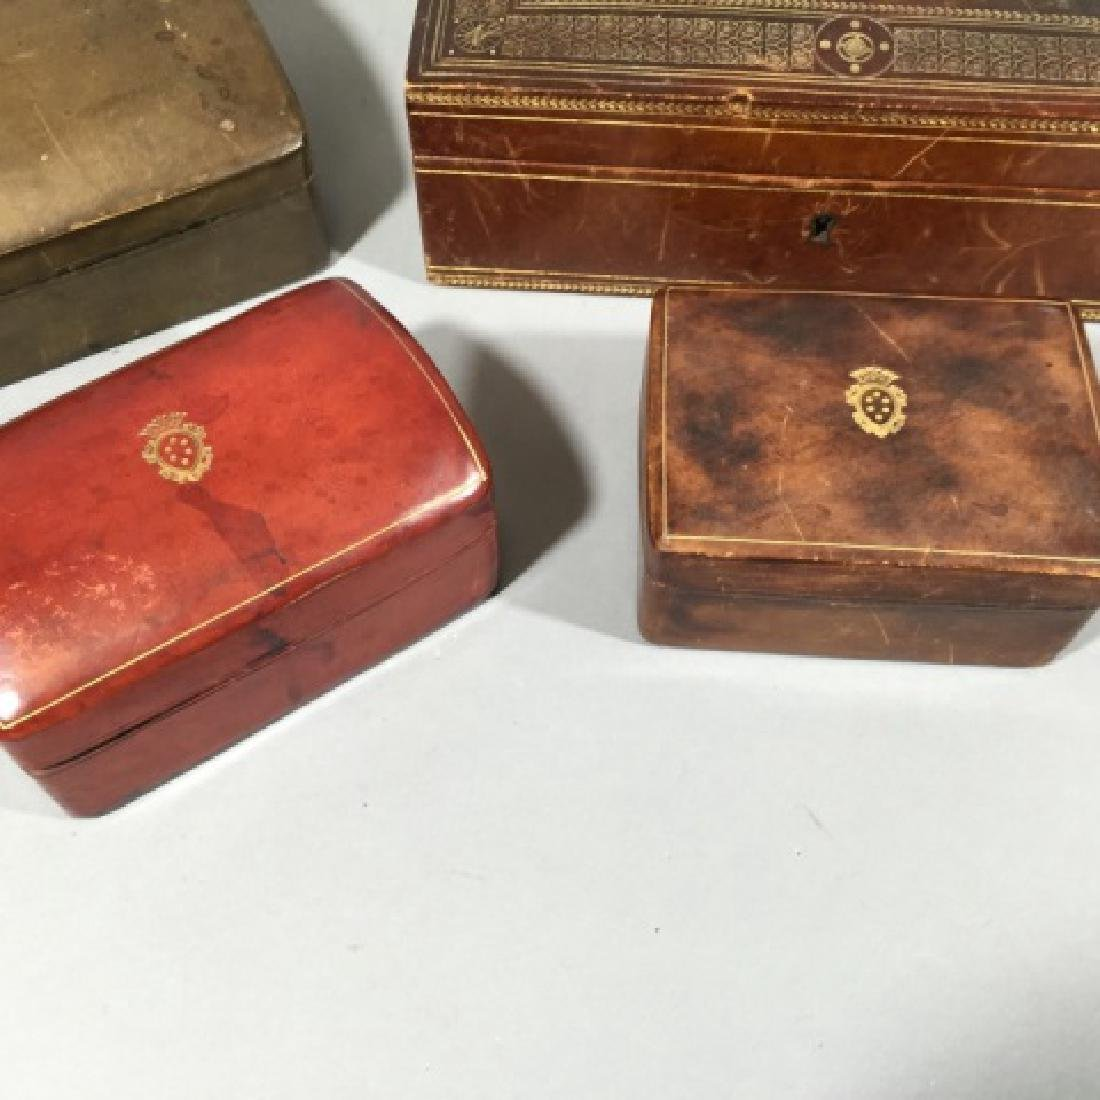 4 Vintage Calfskin Leather Boxes w Gold Embossing - 4